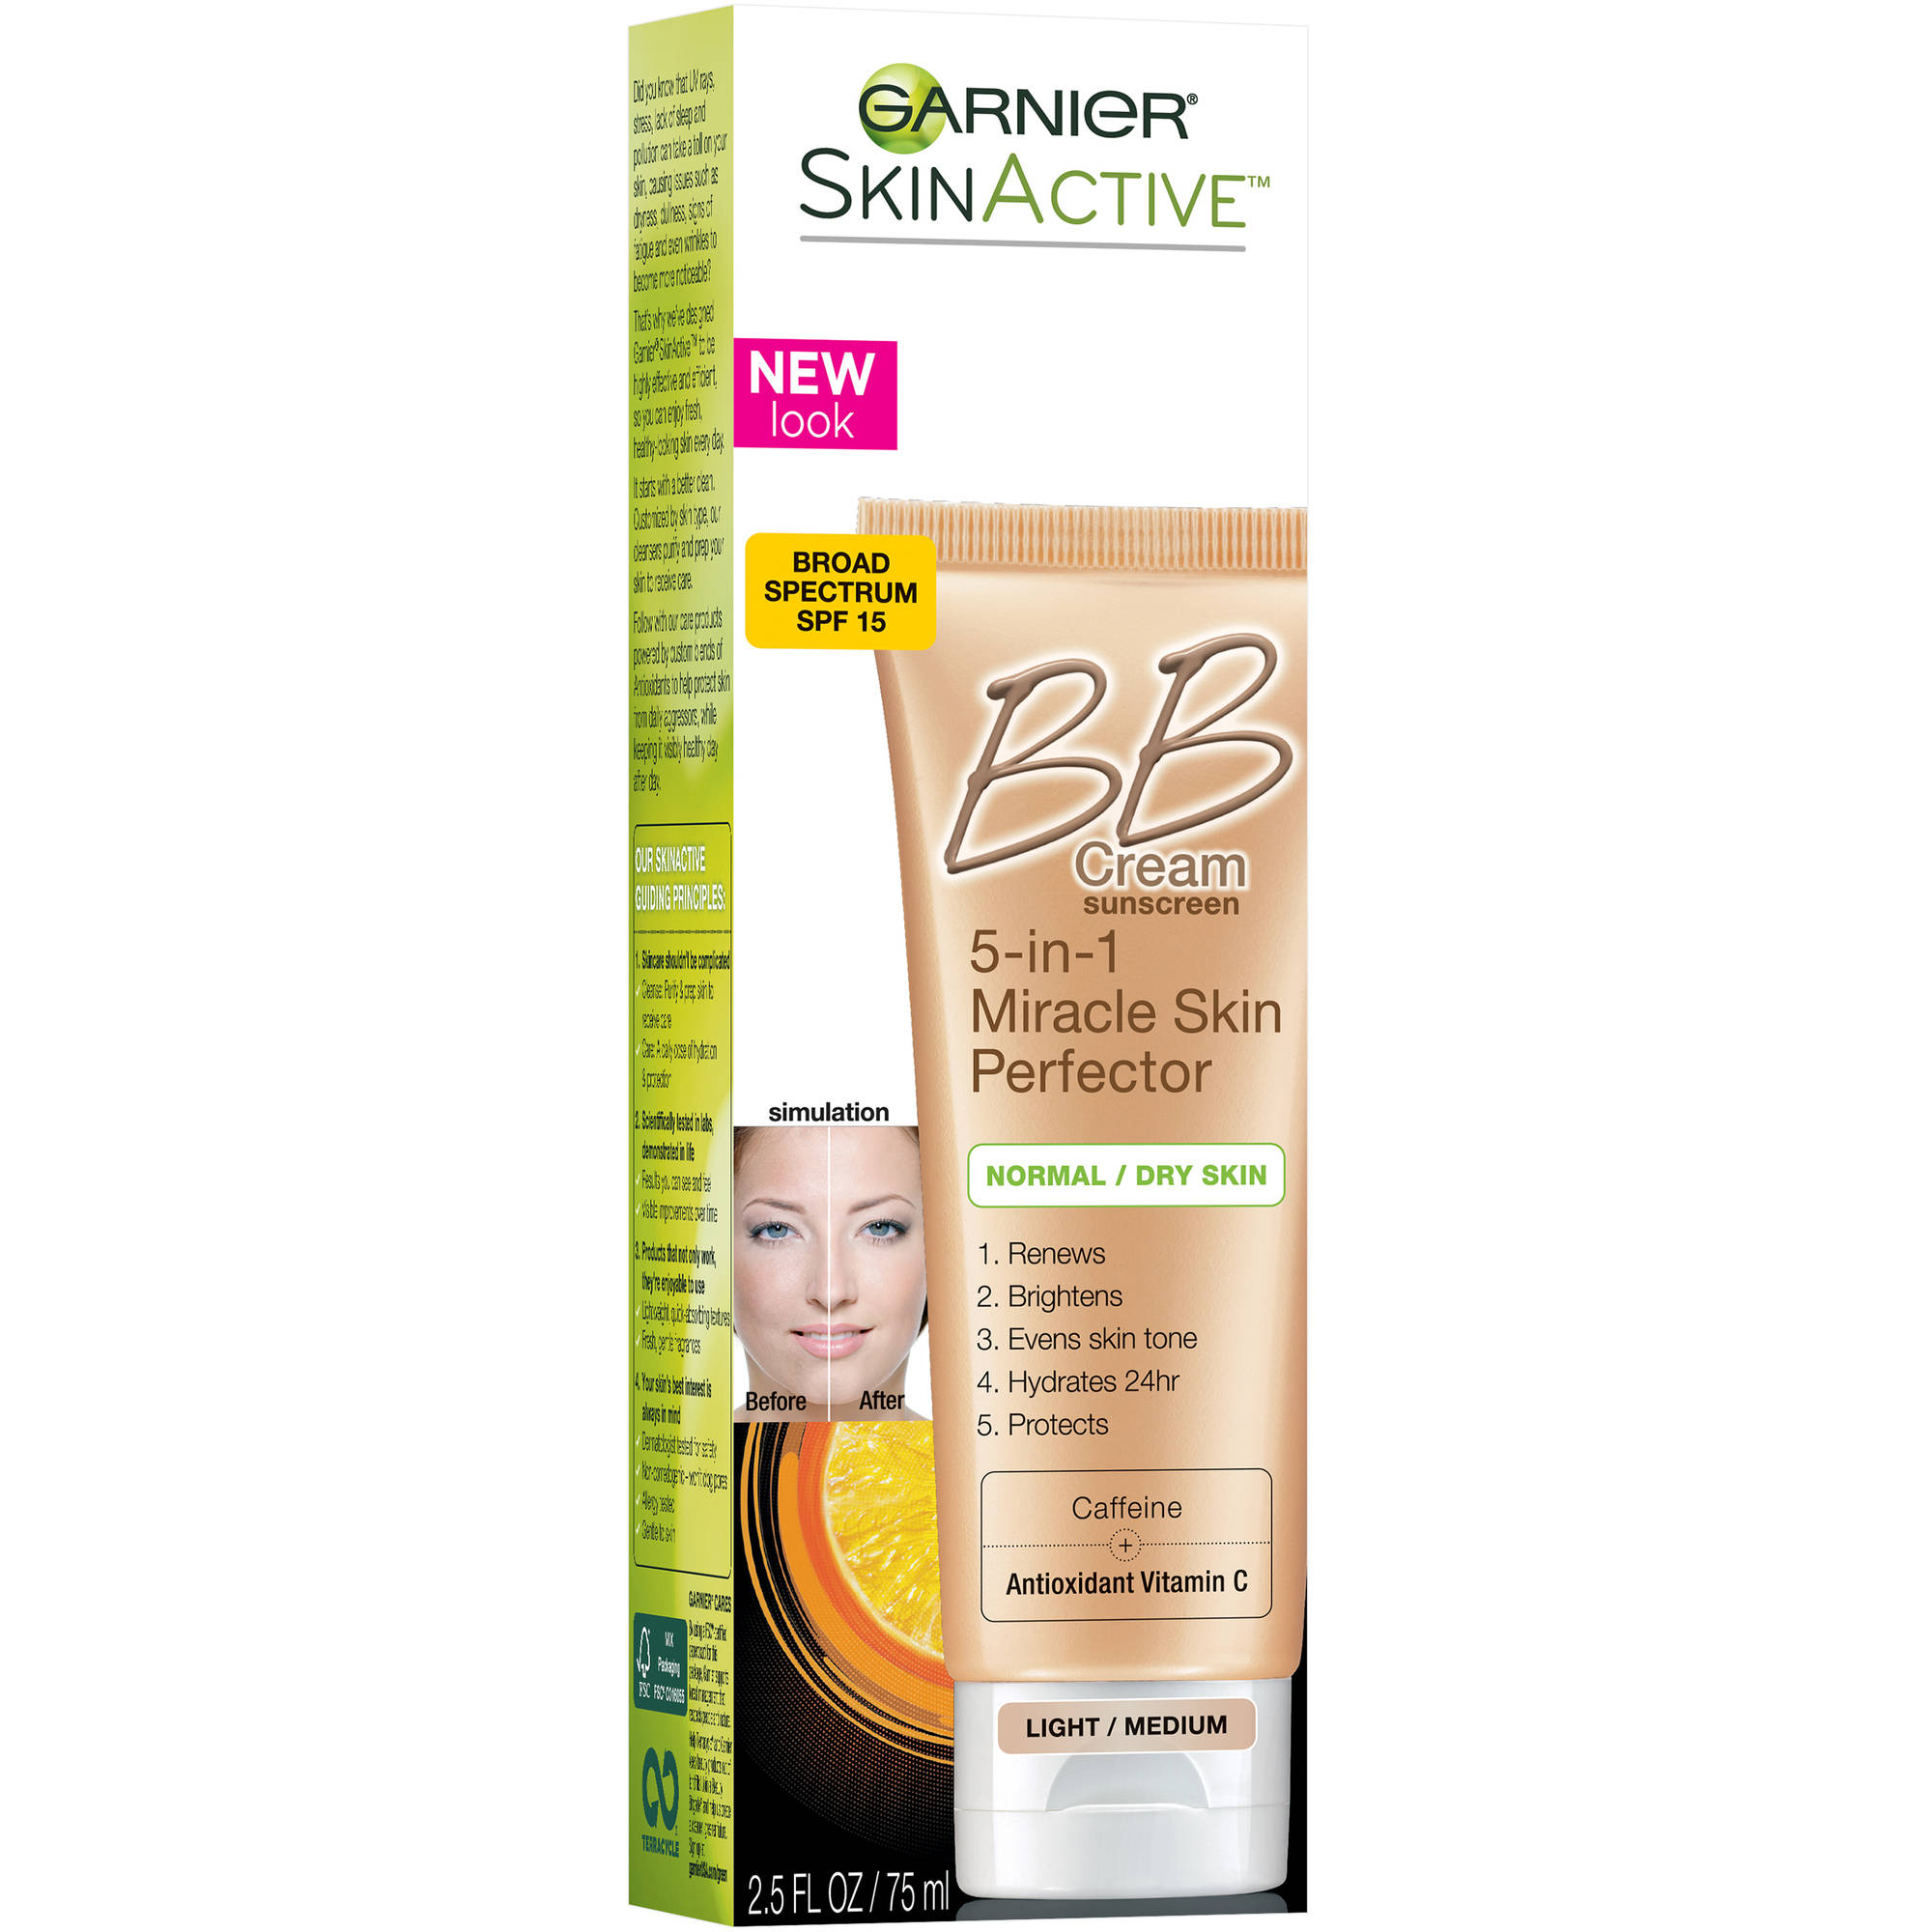 Garnier SkinActive Skin Perfector BB Cream for Normal & Dry Skin